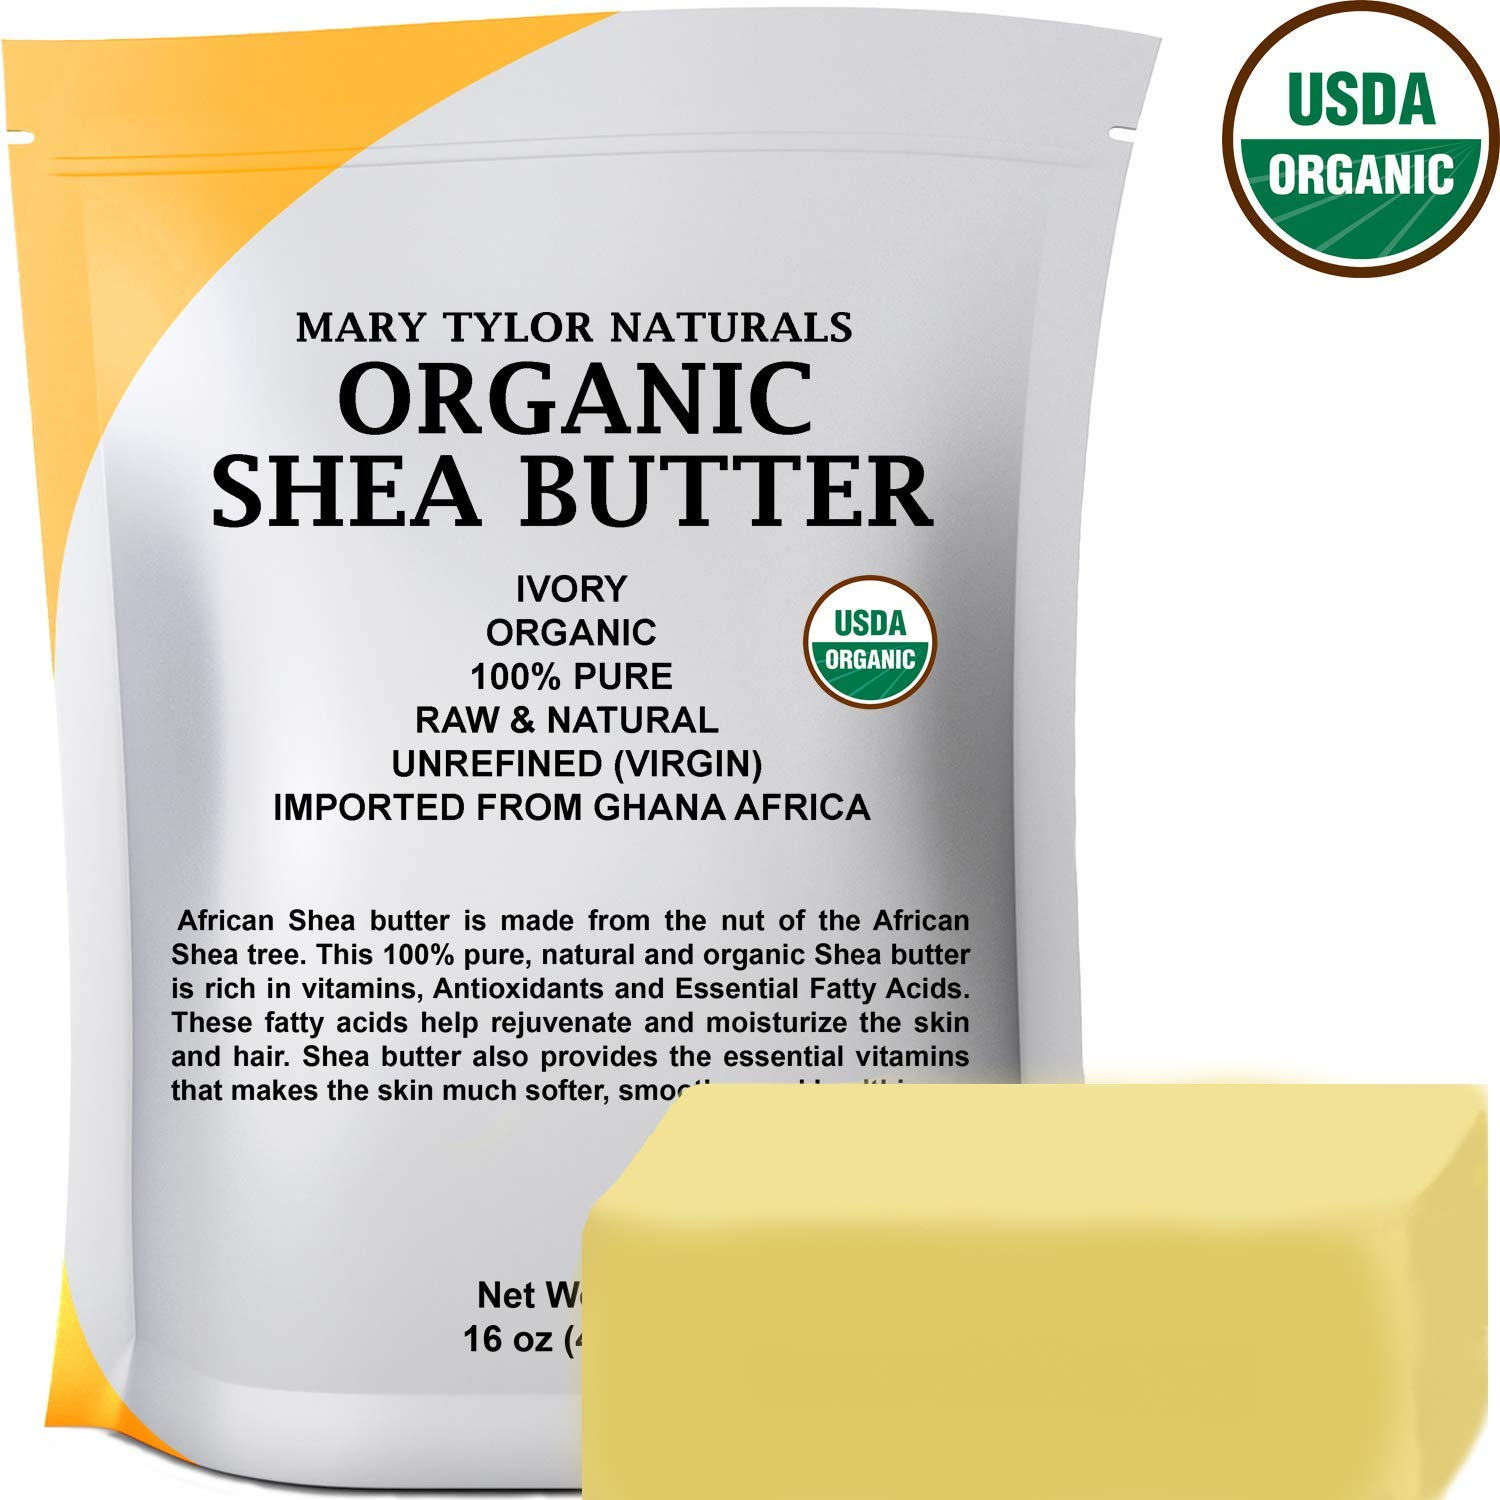 Certified Organic Shea butter 1 lb Raw Unrefined Shea butter Ivory From Ghana Africa, Amazing Skin Nourishment, Great for Eczema, Stretch Marks and Body by Mary Tylor Naturals by Mary Tylor Naturals